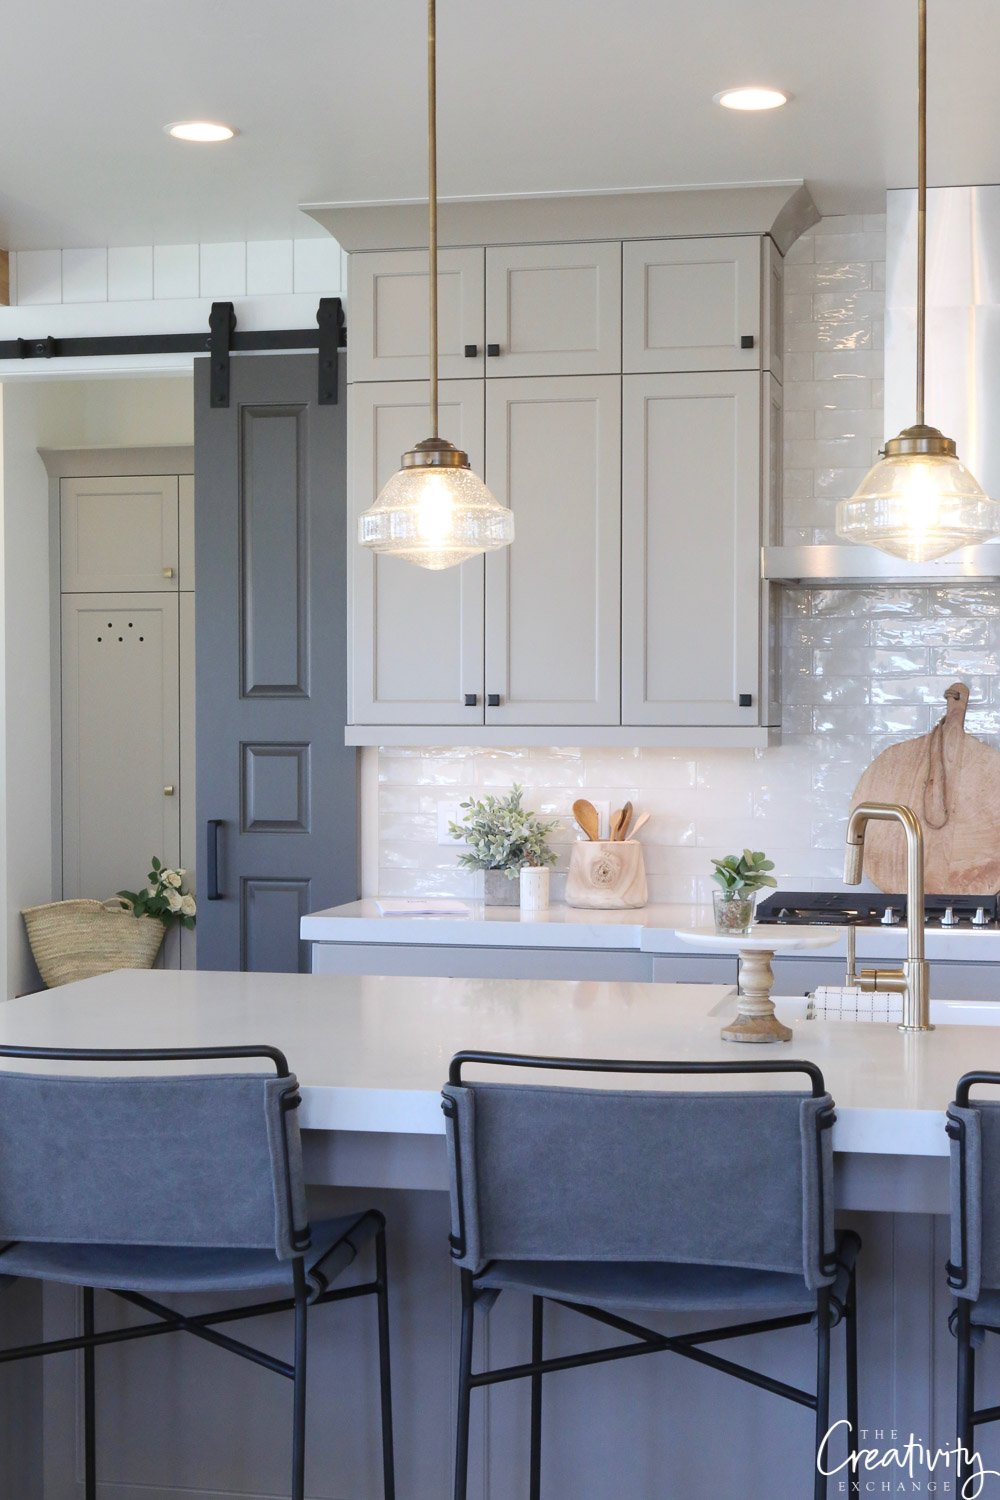 Best Paint For Kitchen Cabinets 2020 2019 Paint Color Trends and Forecasts